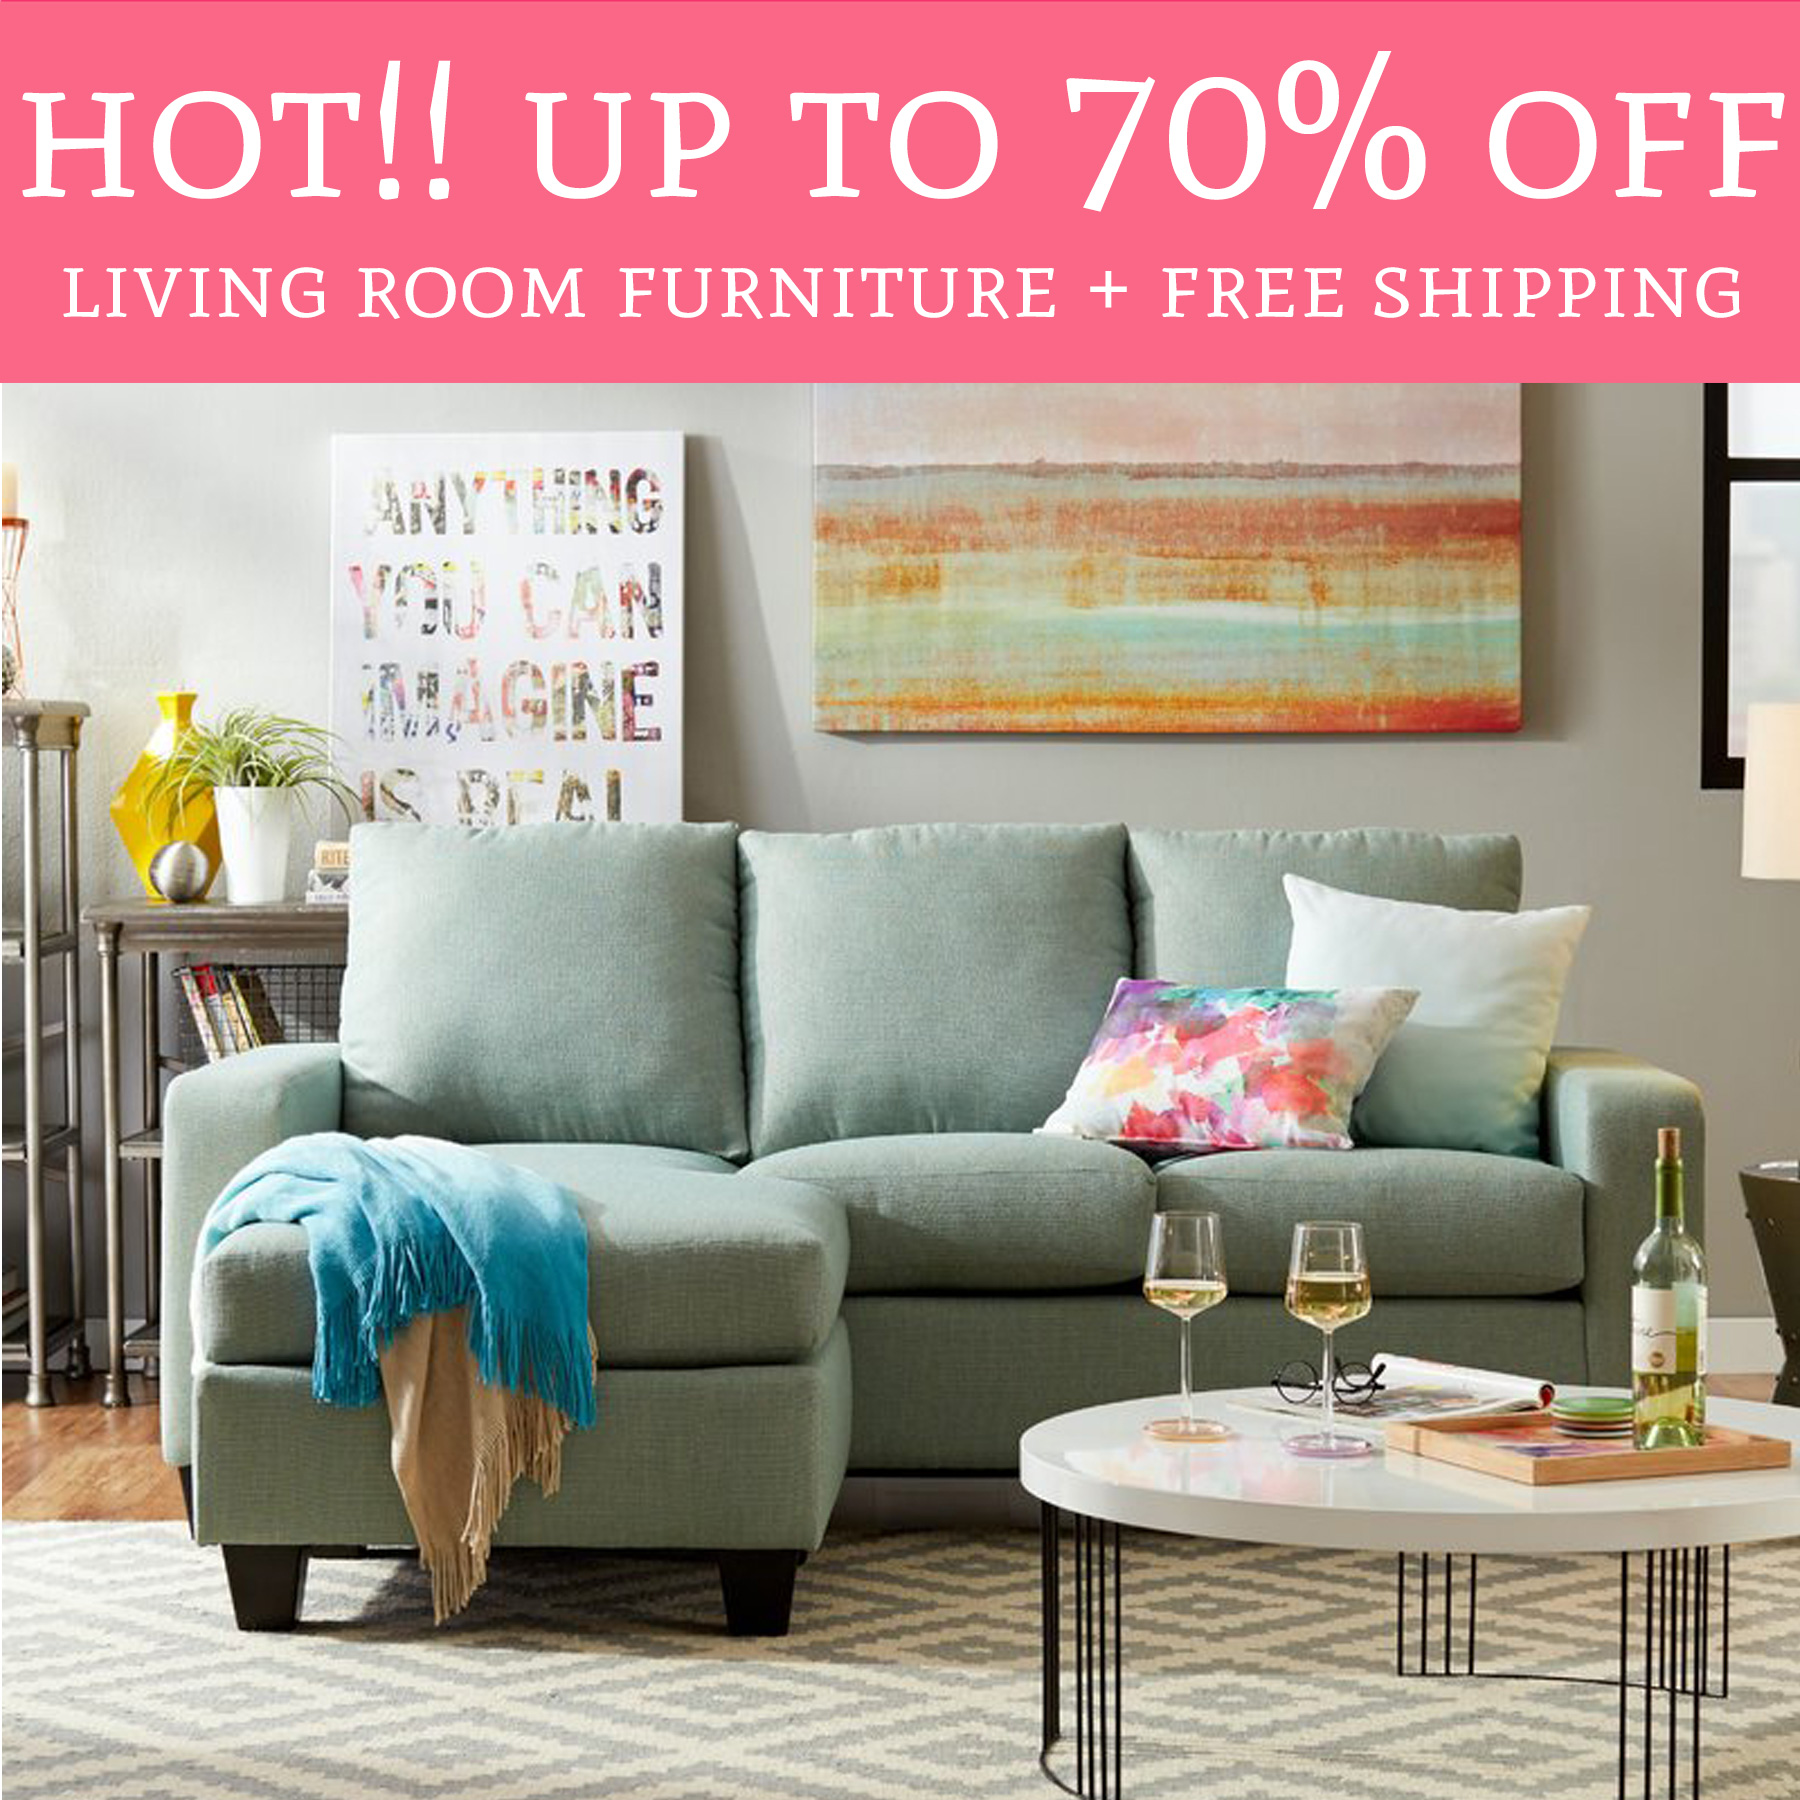 Whoa up to 70 off living room furniture free shipping for 70s living room furniture